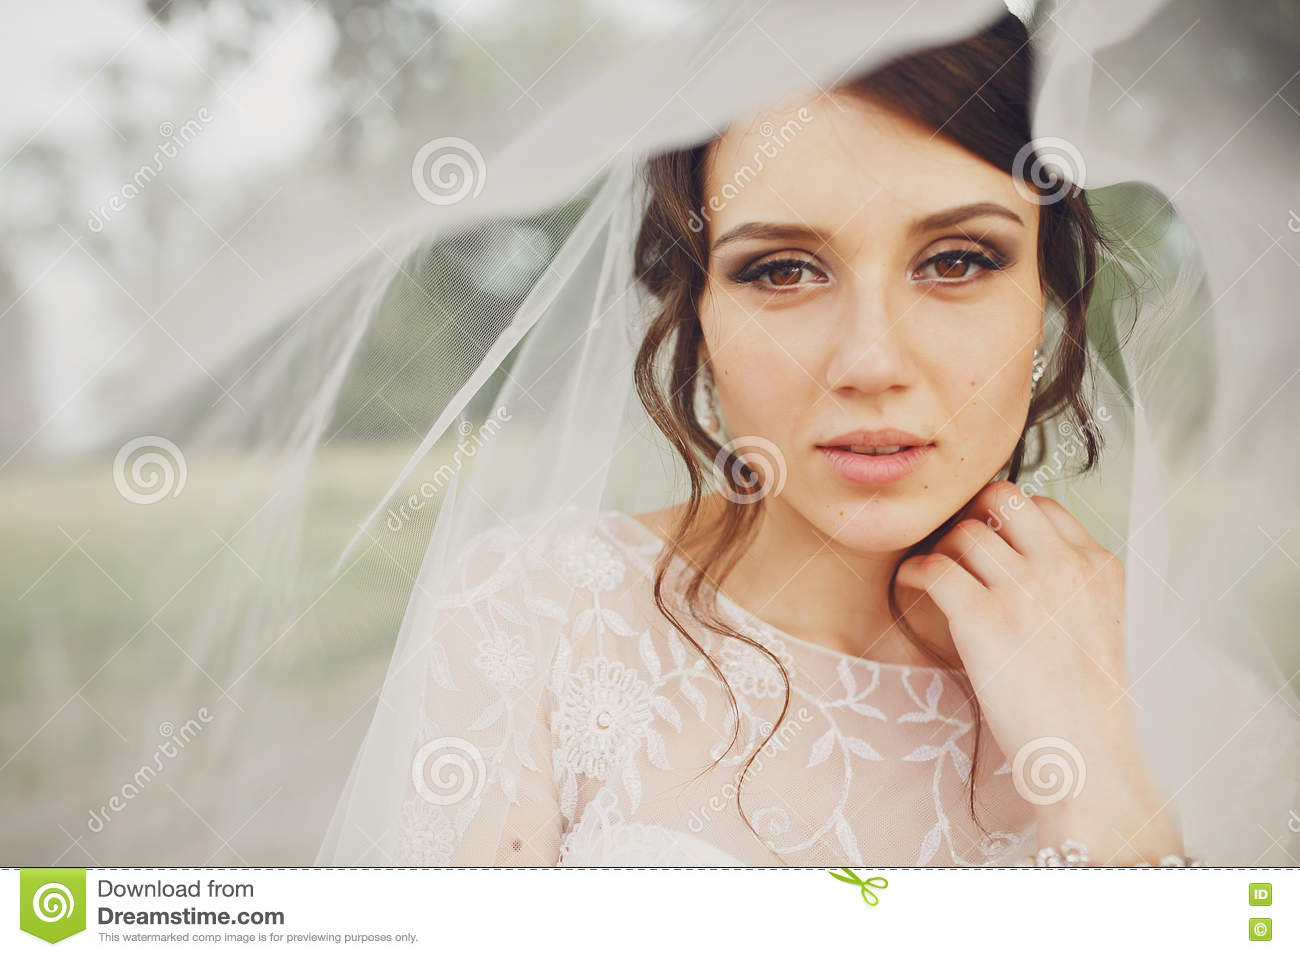 Bride with hazel eyes looks marvelous standing under a veil